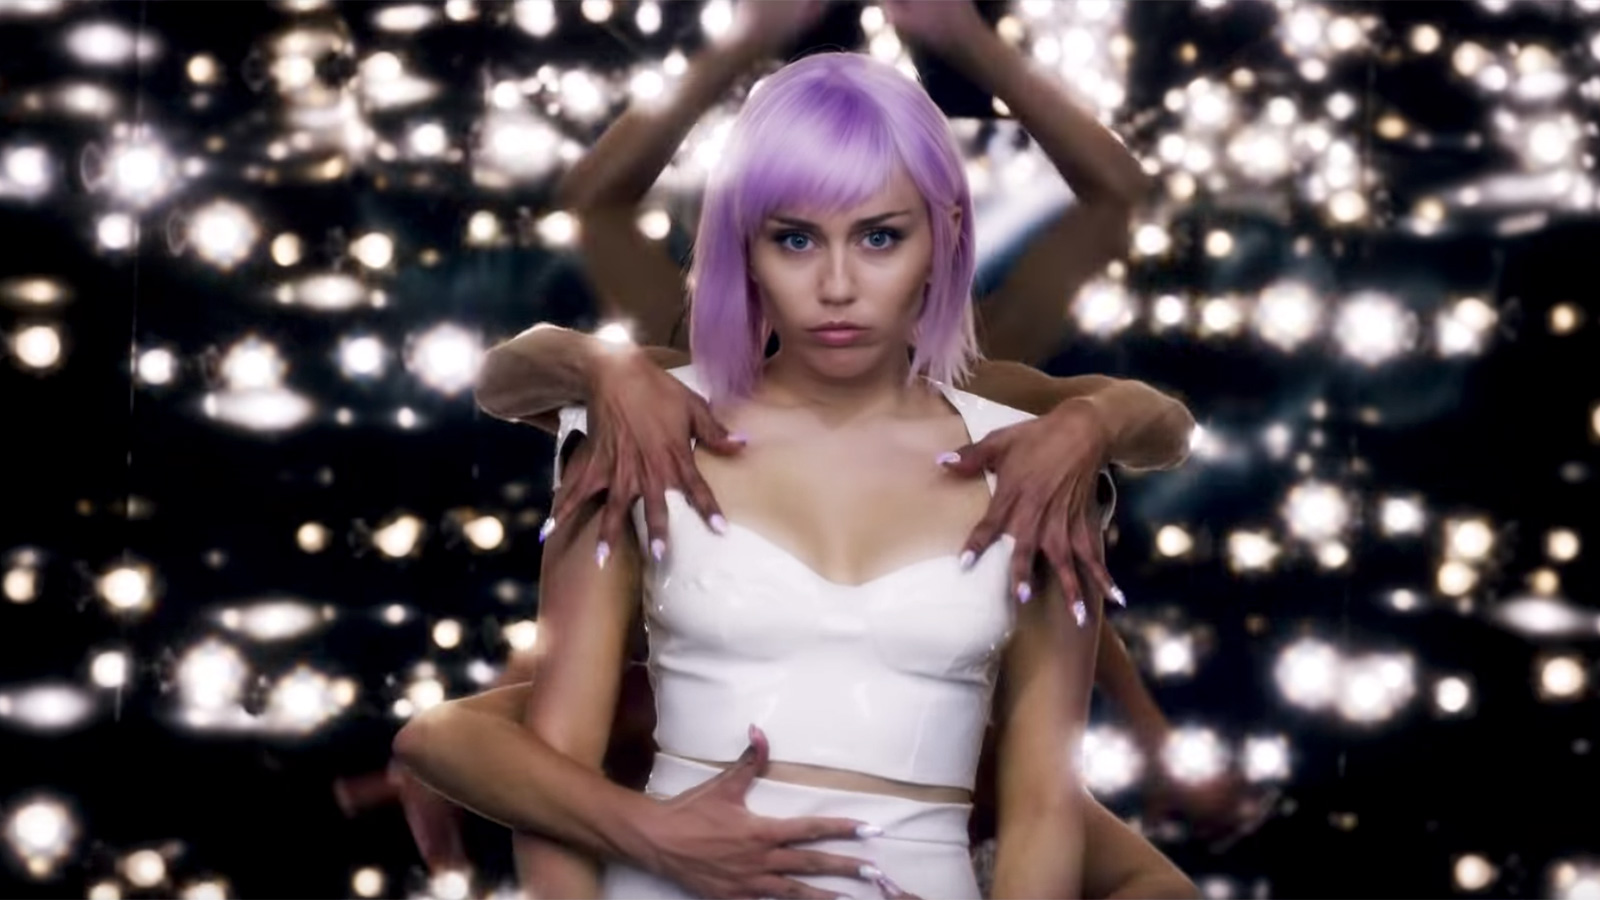 """See Miley Cyrus' Pink, Poppy Video for Nine Inch Nails """"Head Like a Hole"""" Cover"""